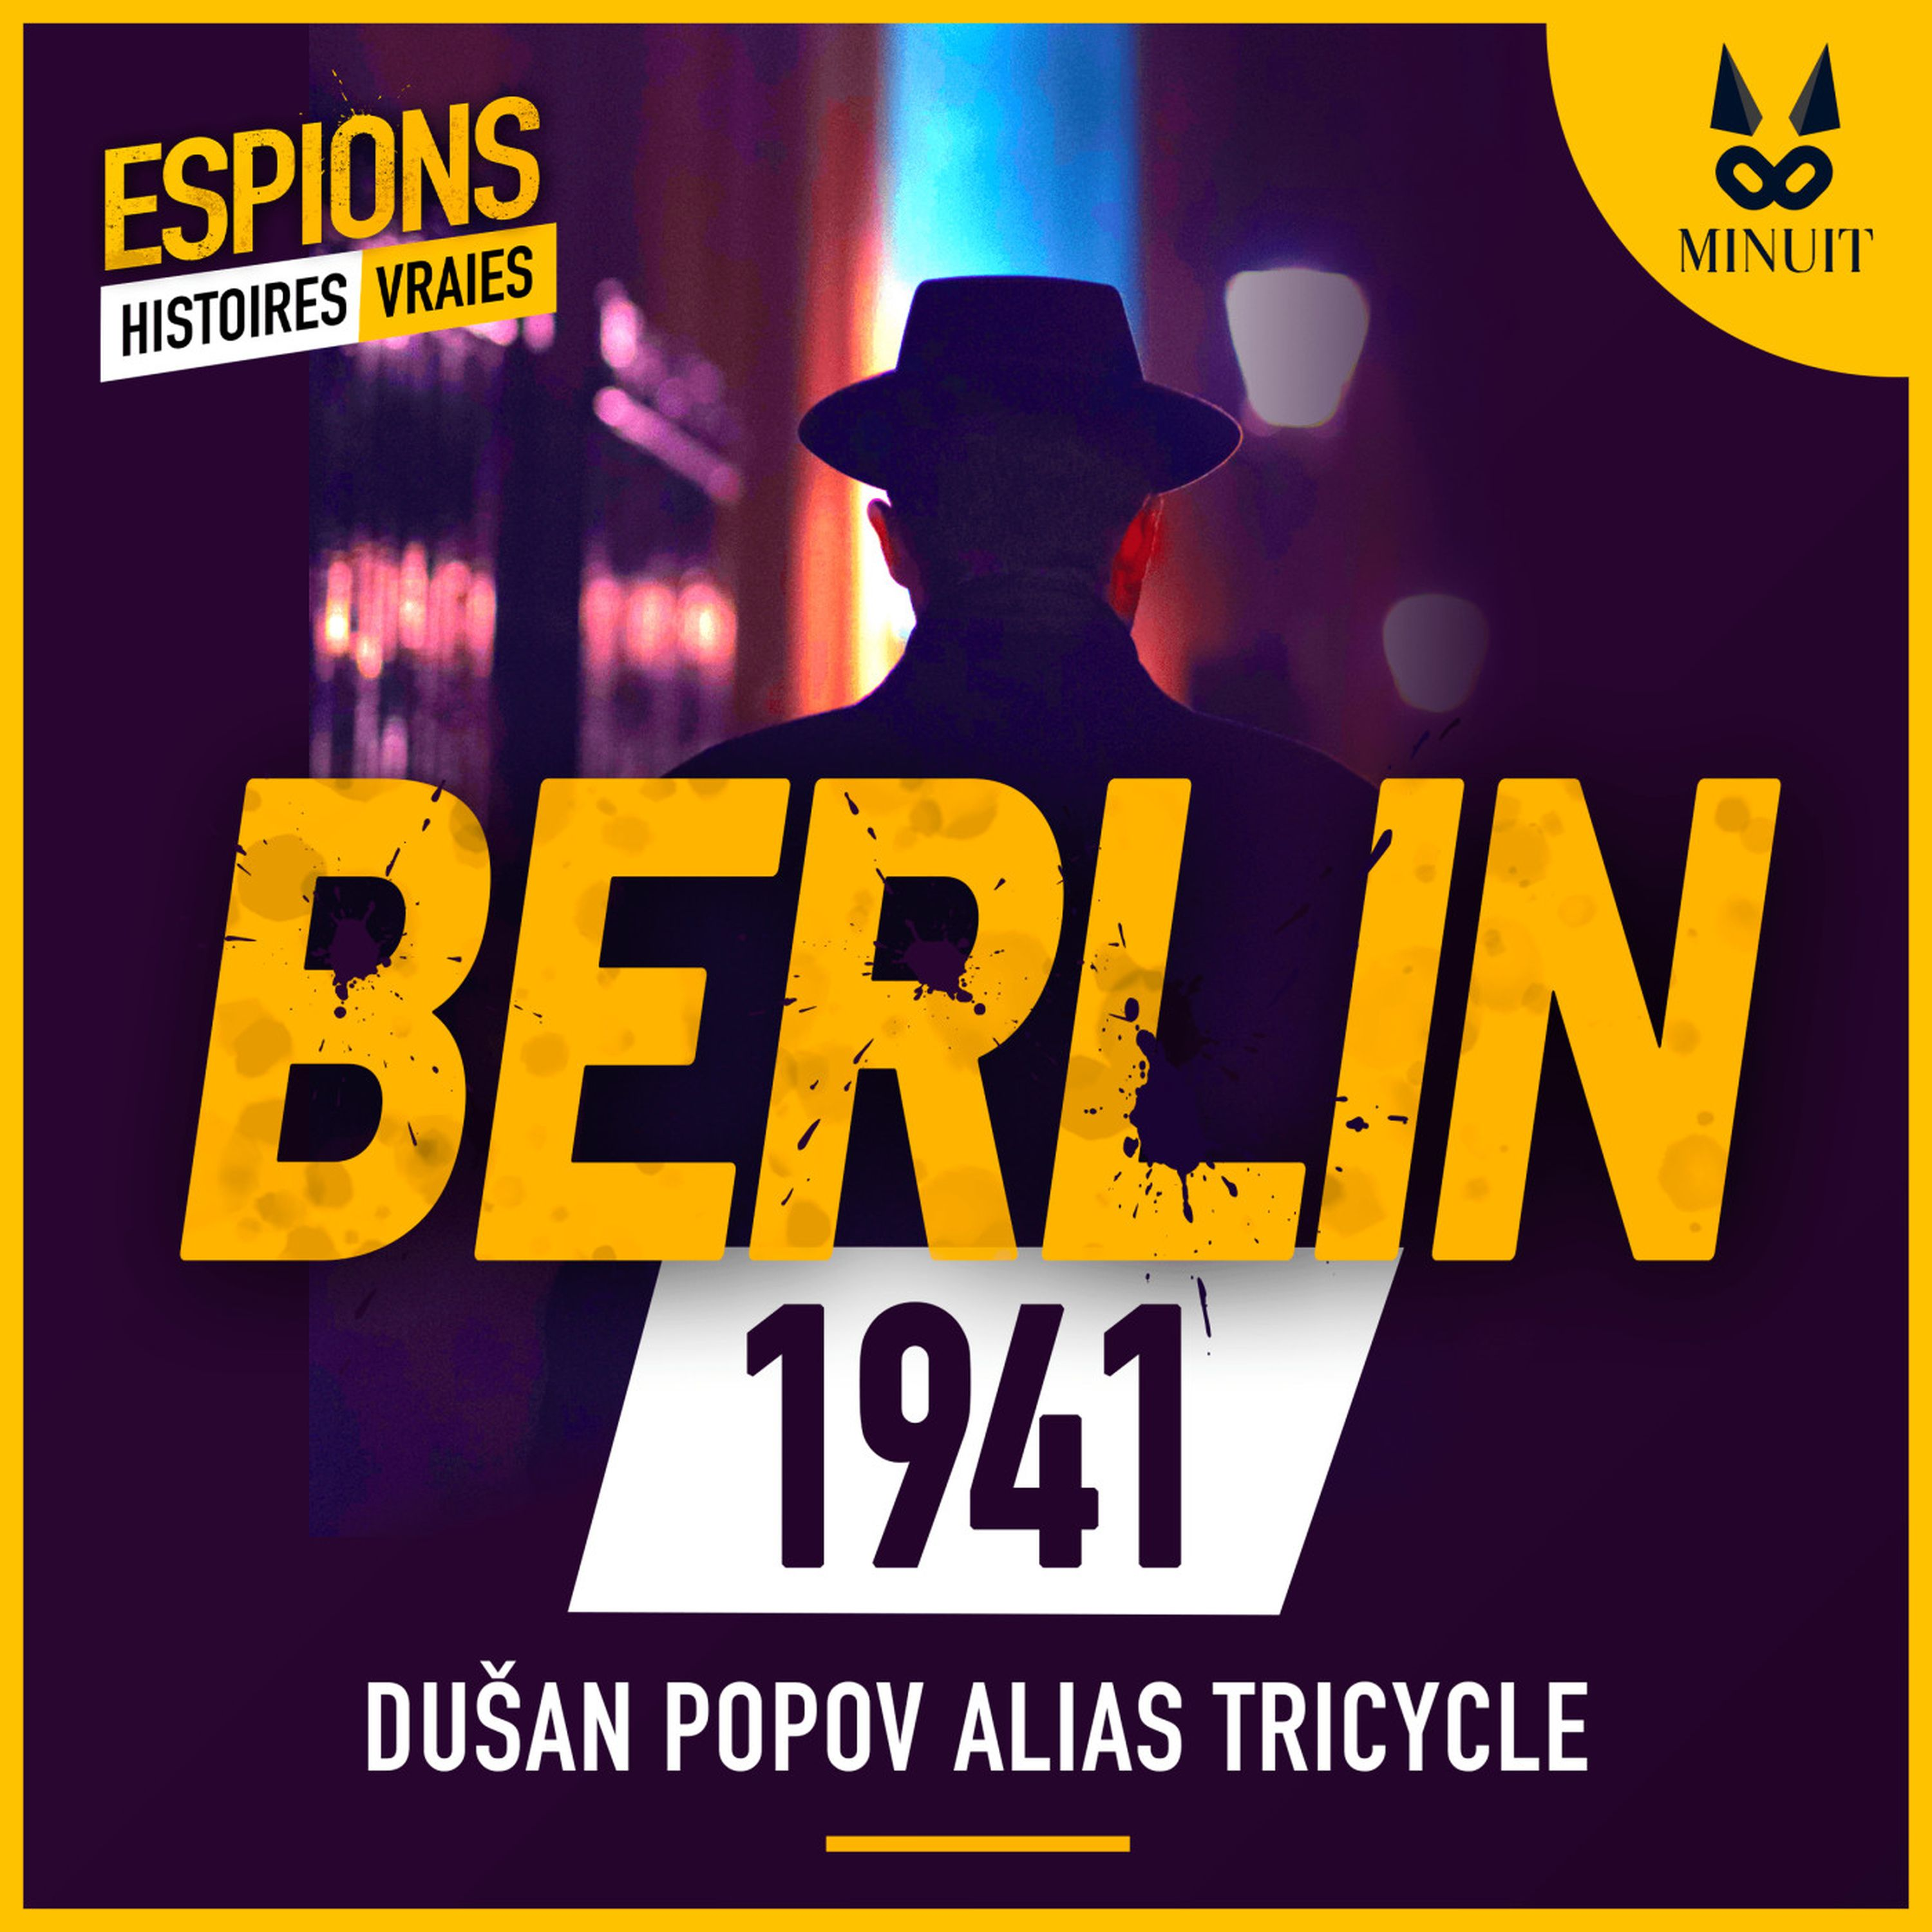 ESPIONS - 06 - Dusan Popov alias Tricycle